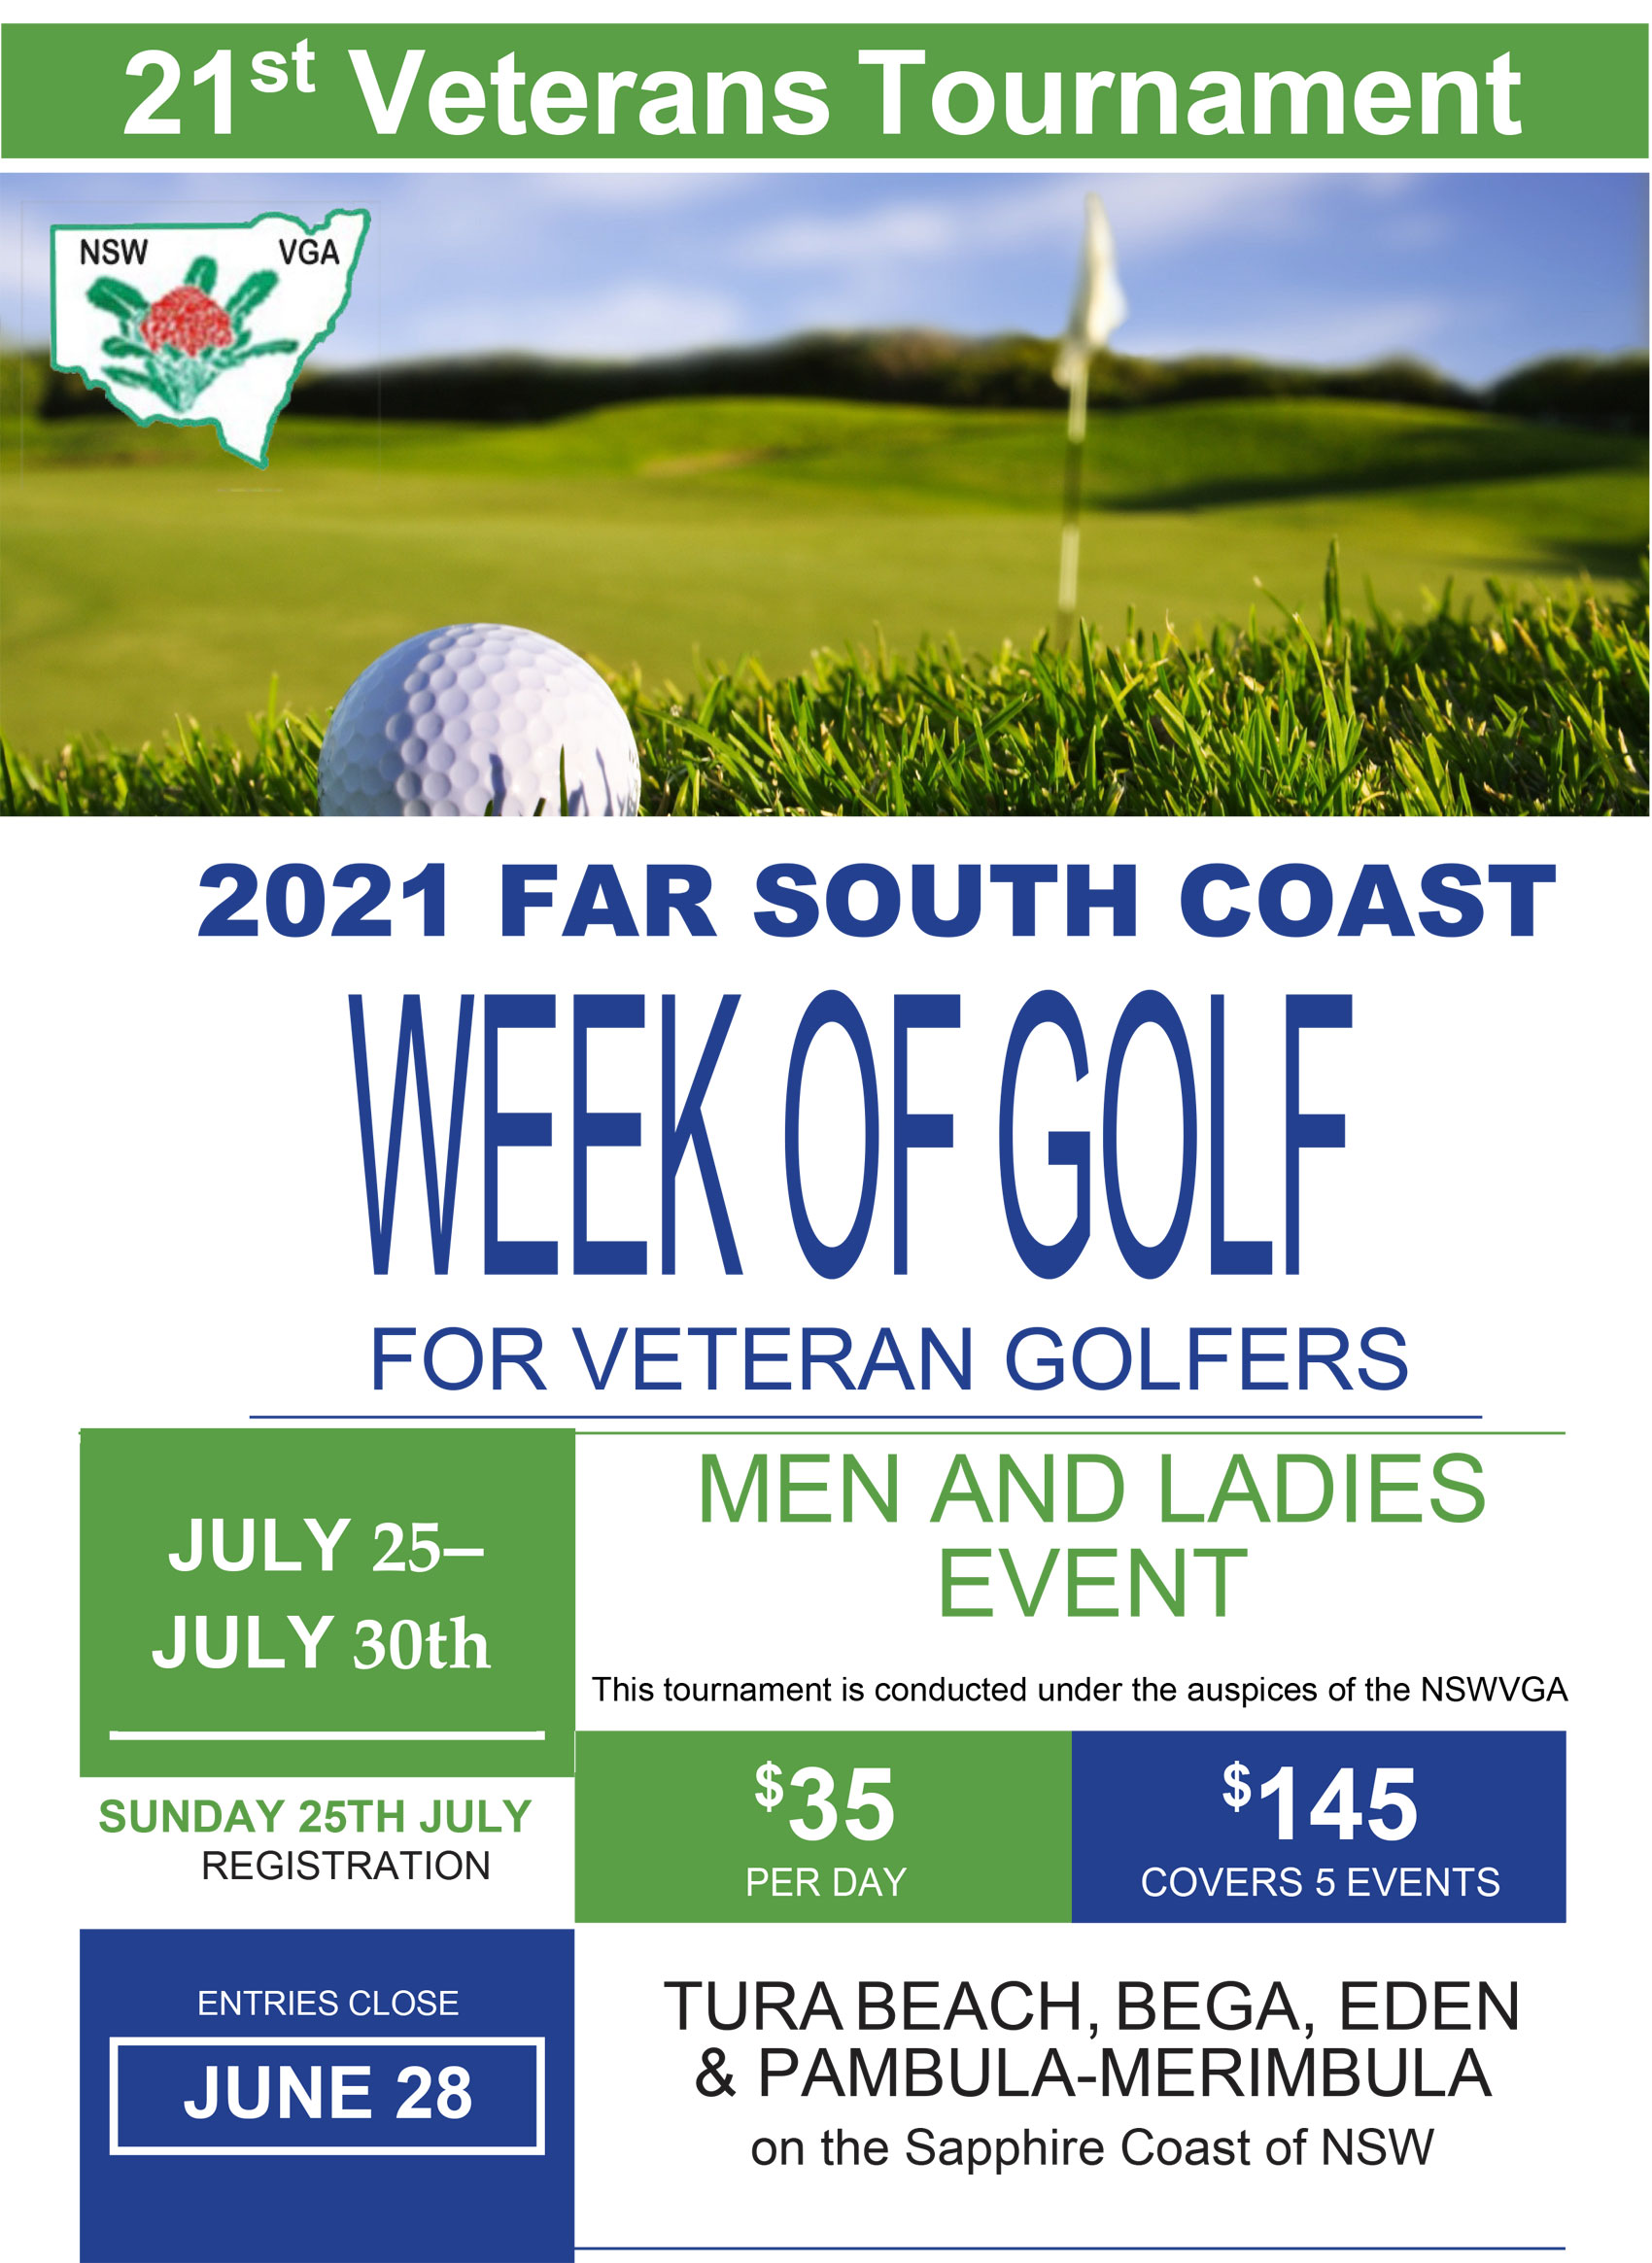 Veteran week of golf tura beach country club